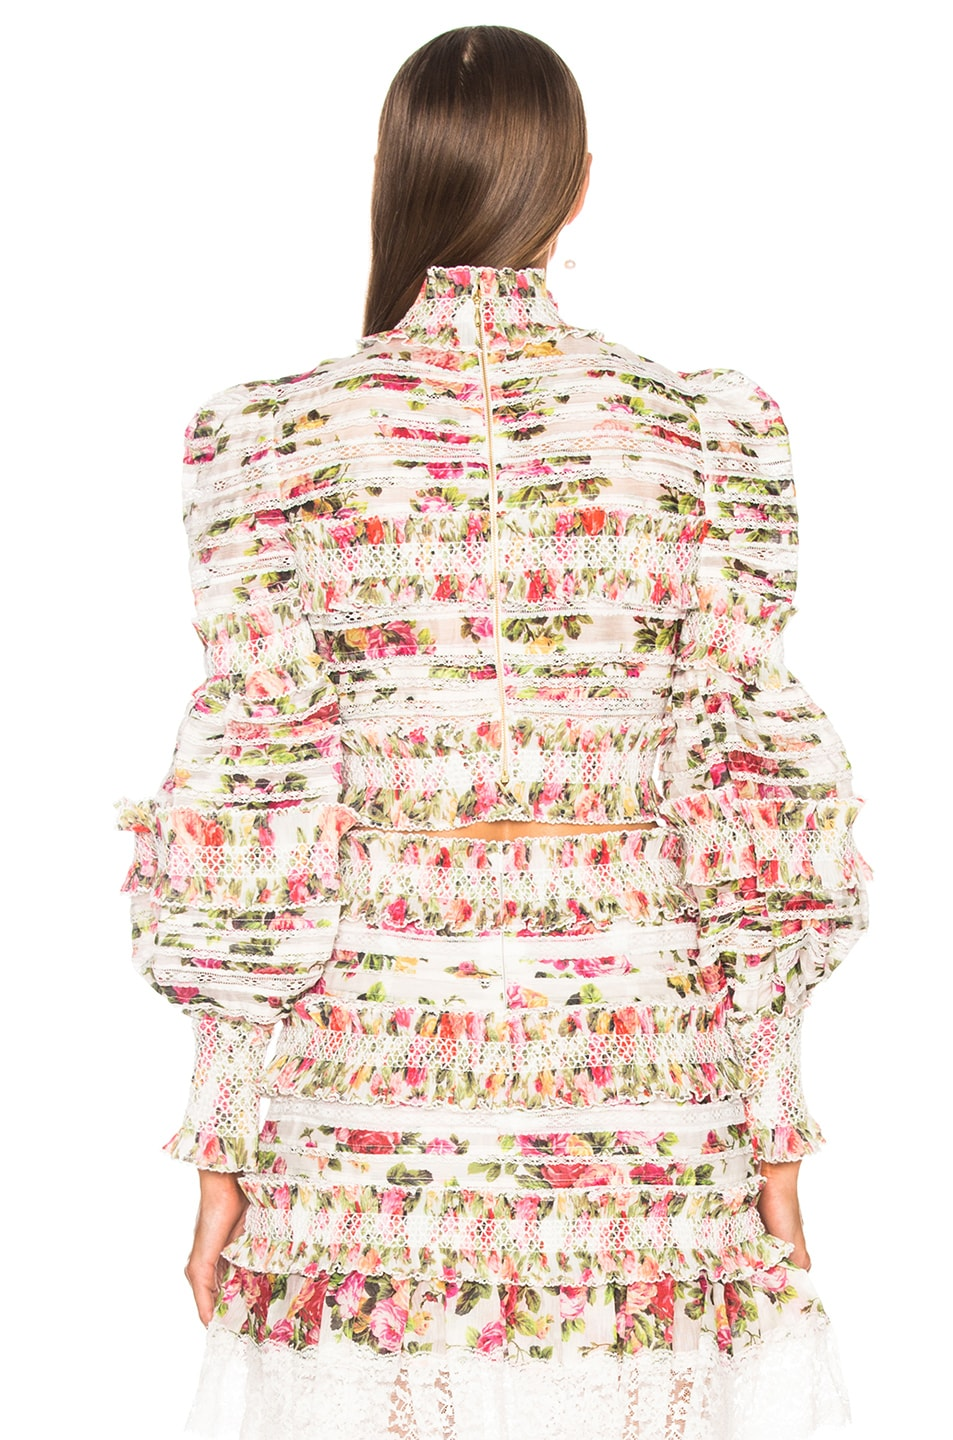 b32548afc450 Image 3 of Zimmermann Sunny Smocked Bodice Top in Watermelon Bouquet Floral